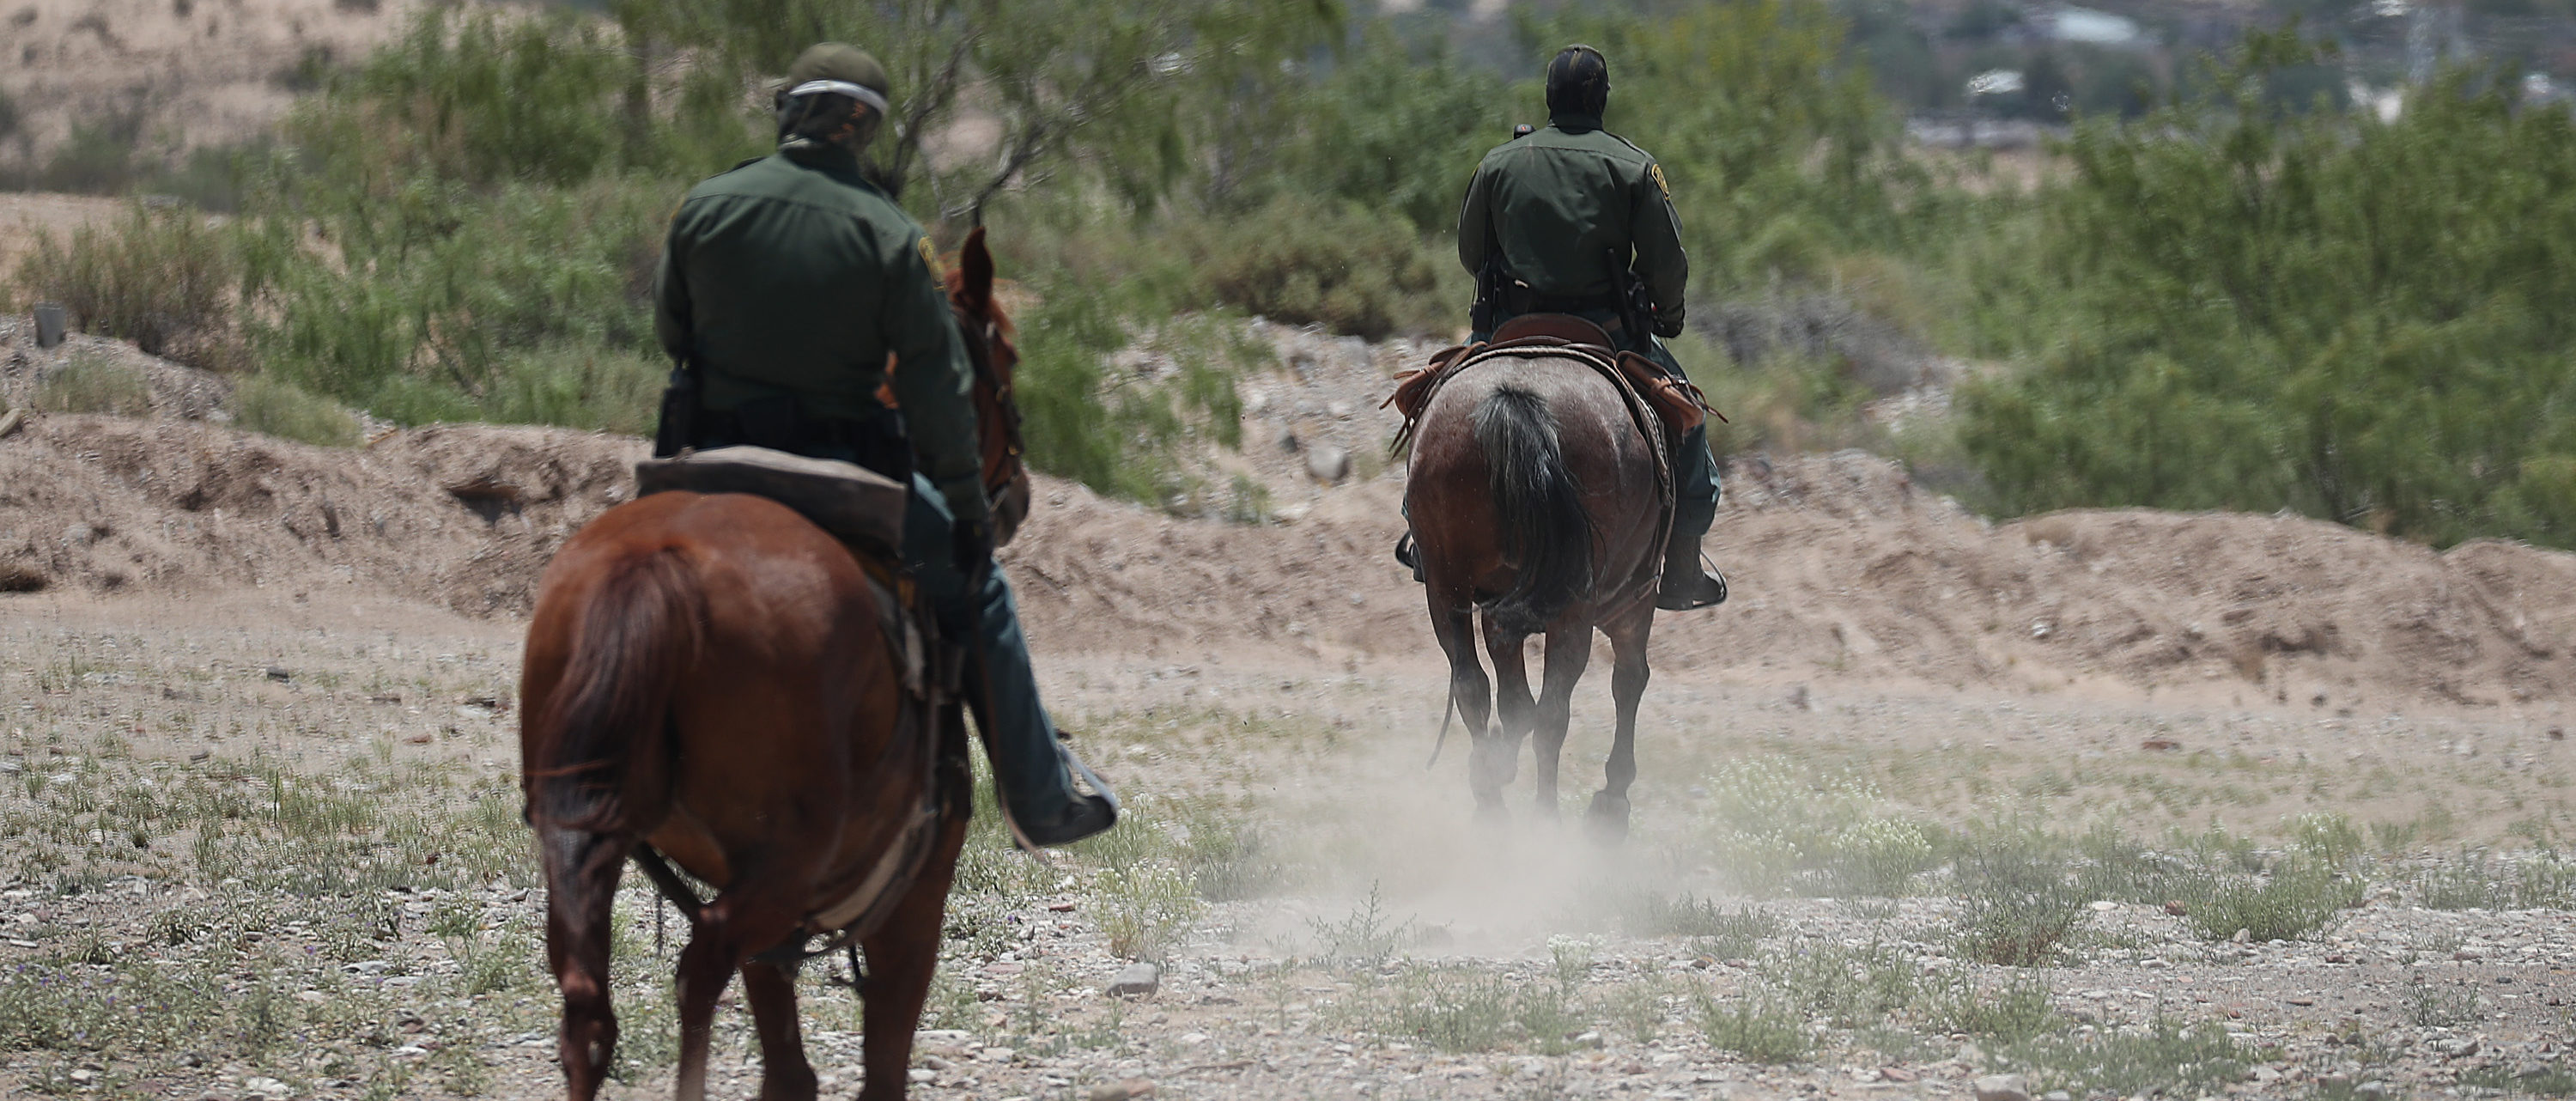 SUNLAND PARK, NM - JUNE 04: U.S. Border Patrol agents on horseback are seen as they patrol near the United States and Mexico border on June 04, 2019 in Sunland Park, New Mexico. In recent months, U.S. immigration officials have seen a surge in the number of asylum seekers arriving at the border. (Photo by Joe Raedle/Getty Images)